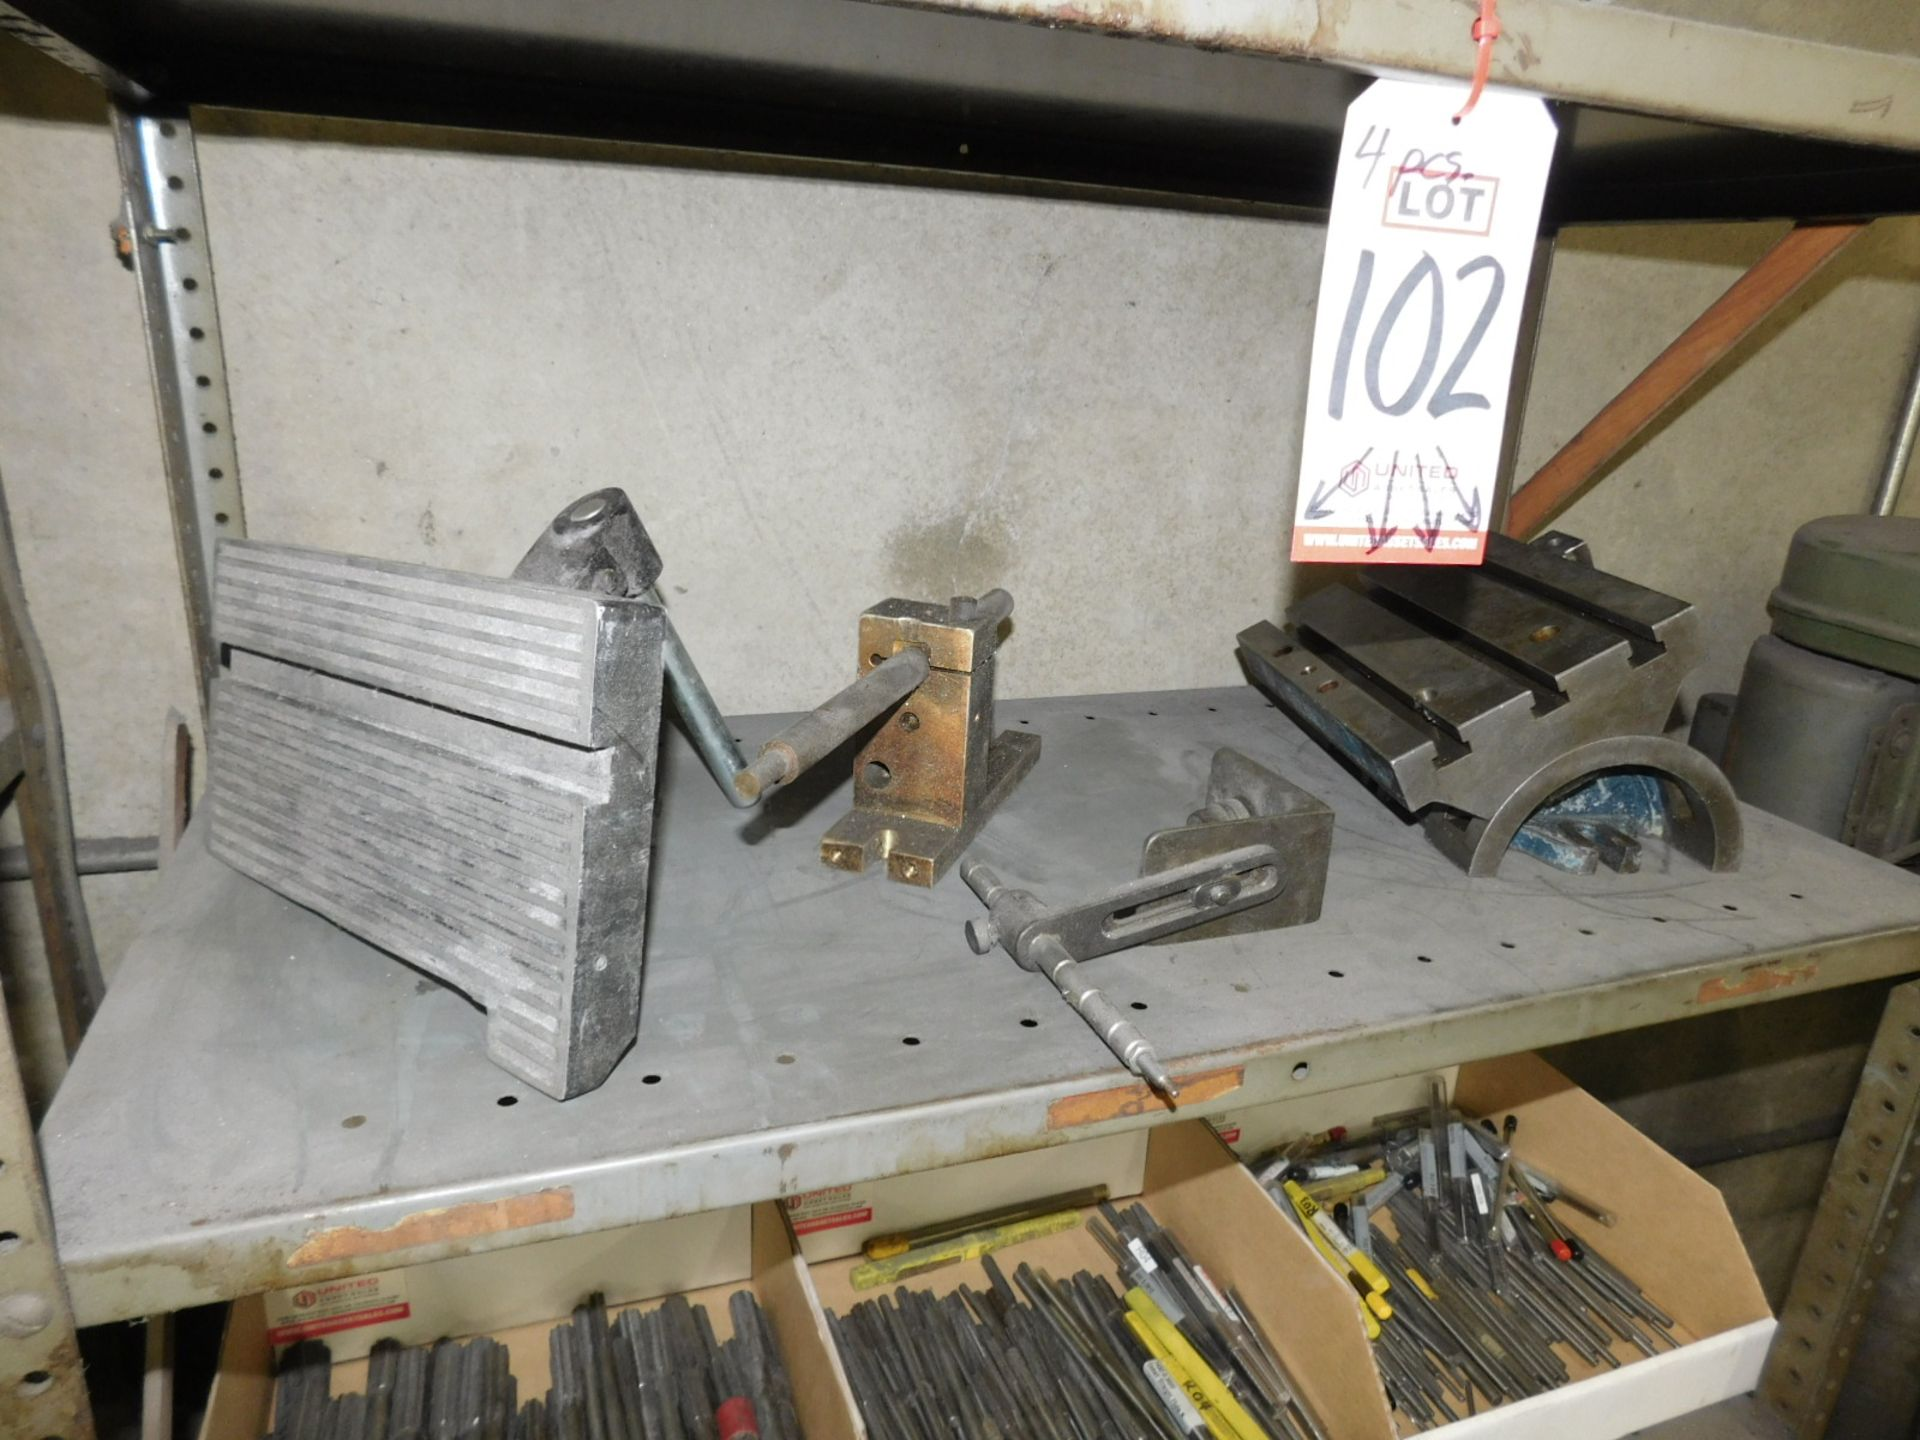 """LOT - (4) FIXTURES INCLUDING A 7"""" X 10"""" TILTING T-SLOT TABLE - Image 2 of 2"""